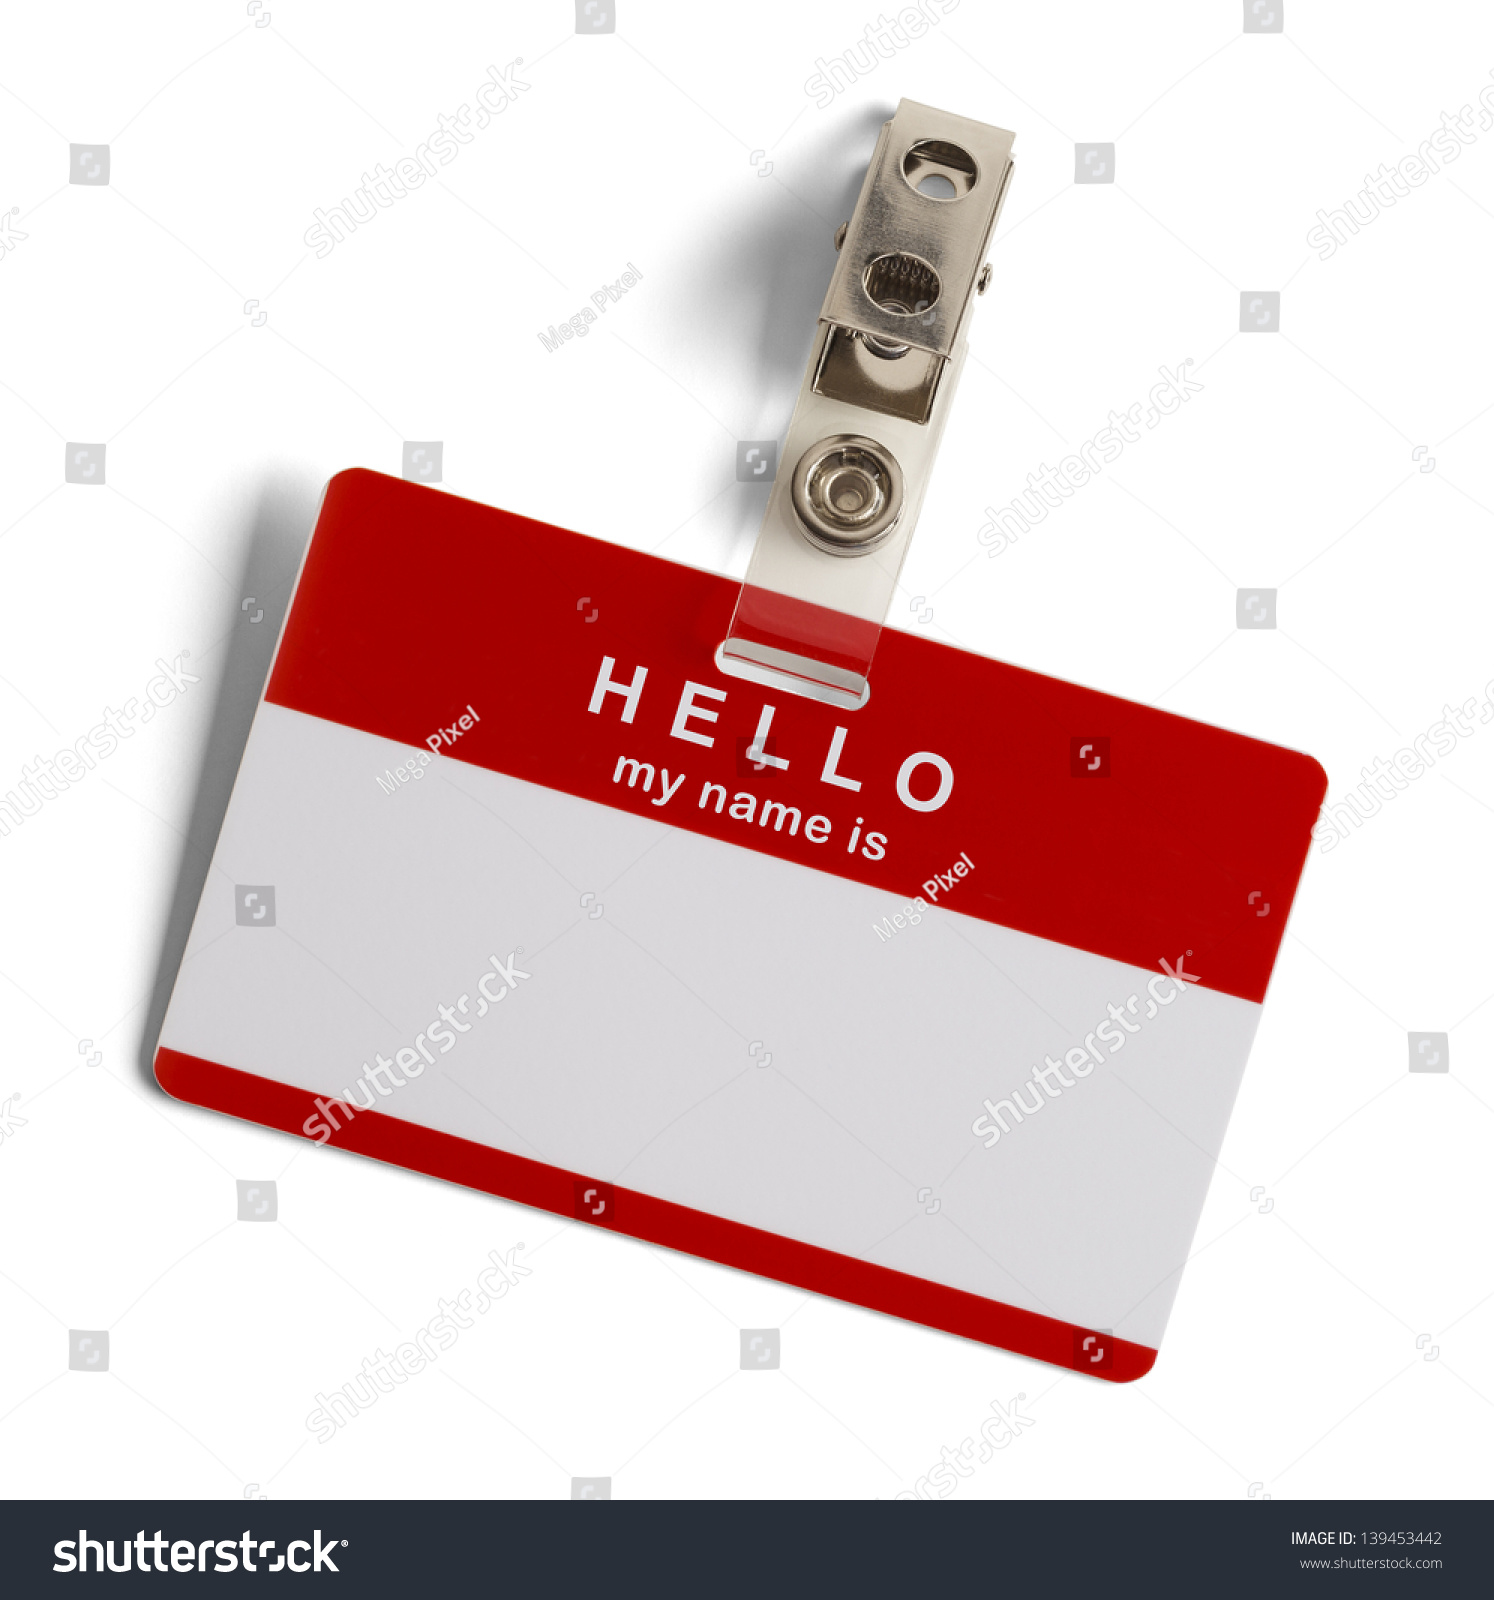 H tag background image - Red And White Plastic Name Tag With Hello My Name Is Isolated On White Background